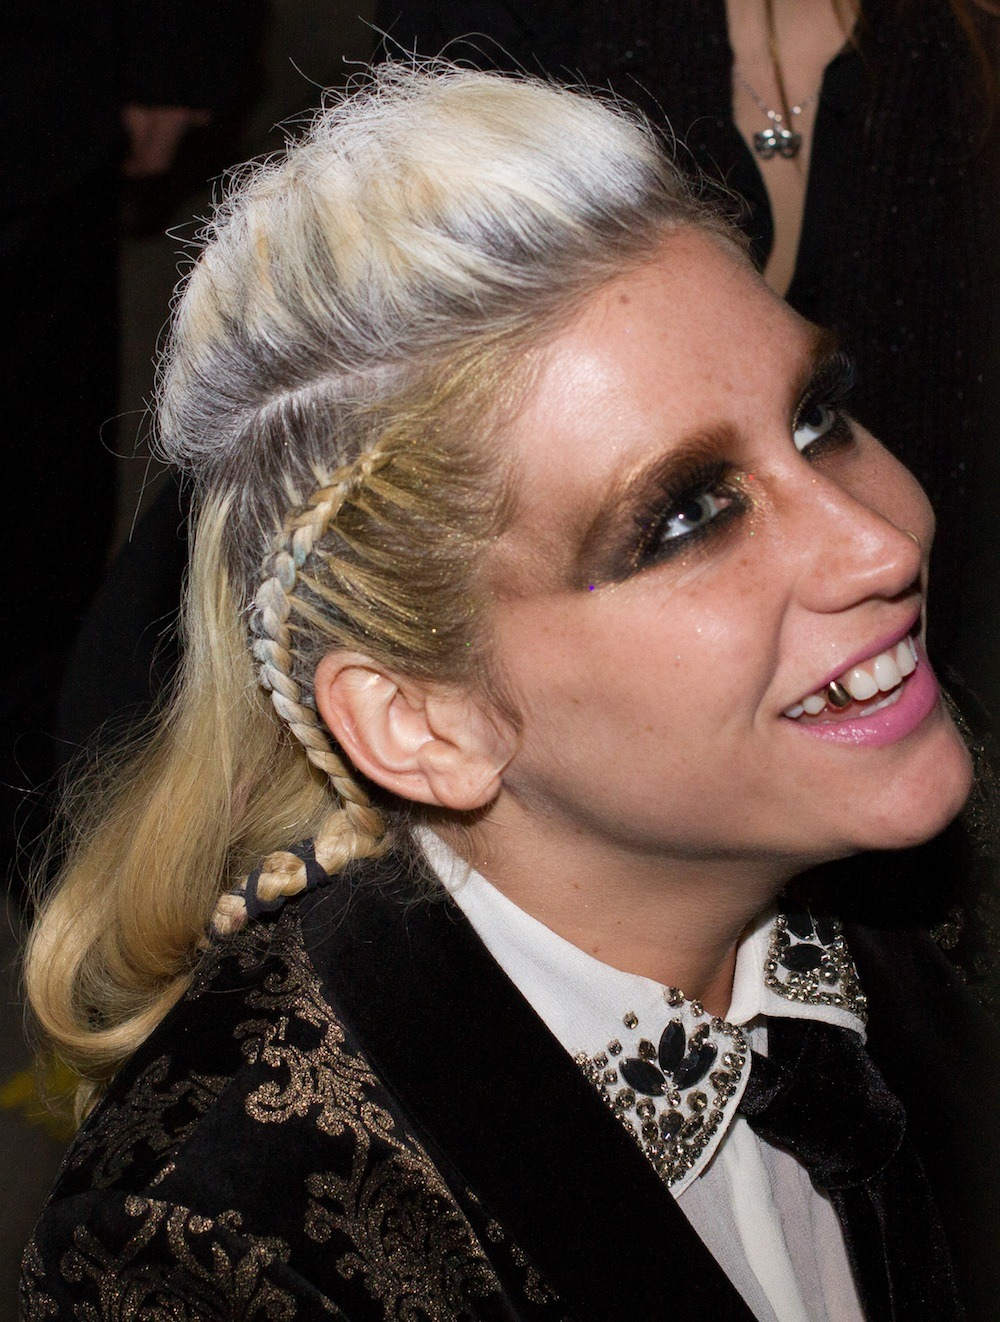 Looking good (?), Ke$ha!